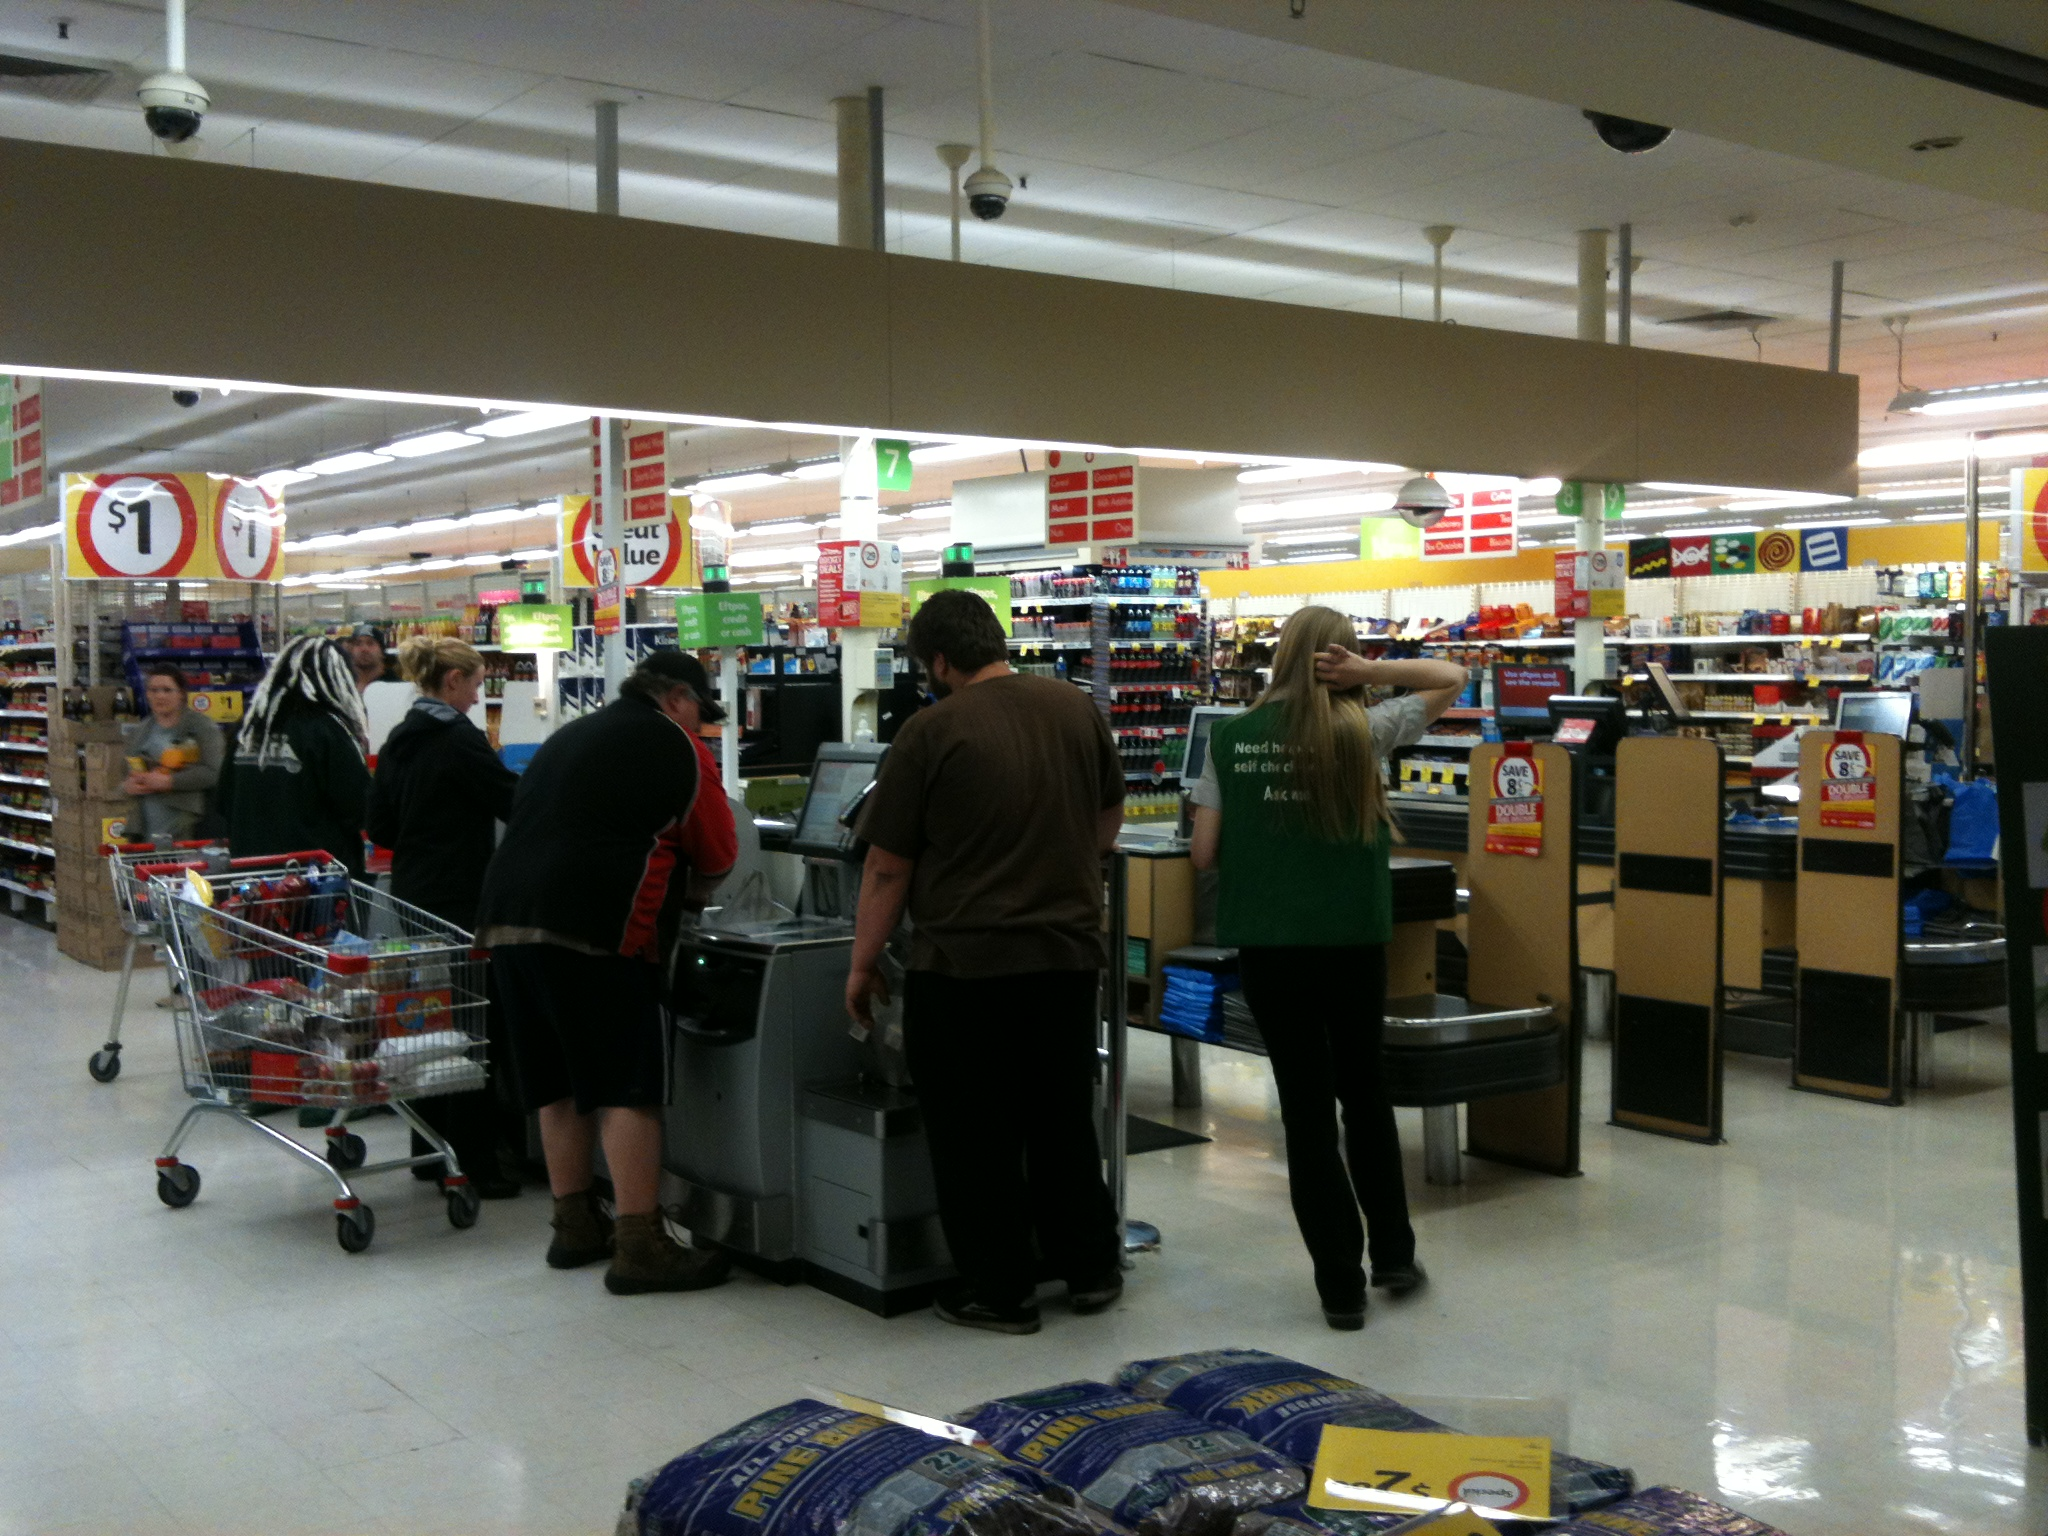 Chieftech blog: Self-service checkouts - love them or hate them ...